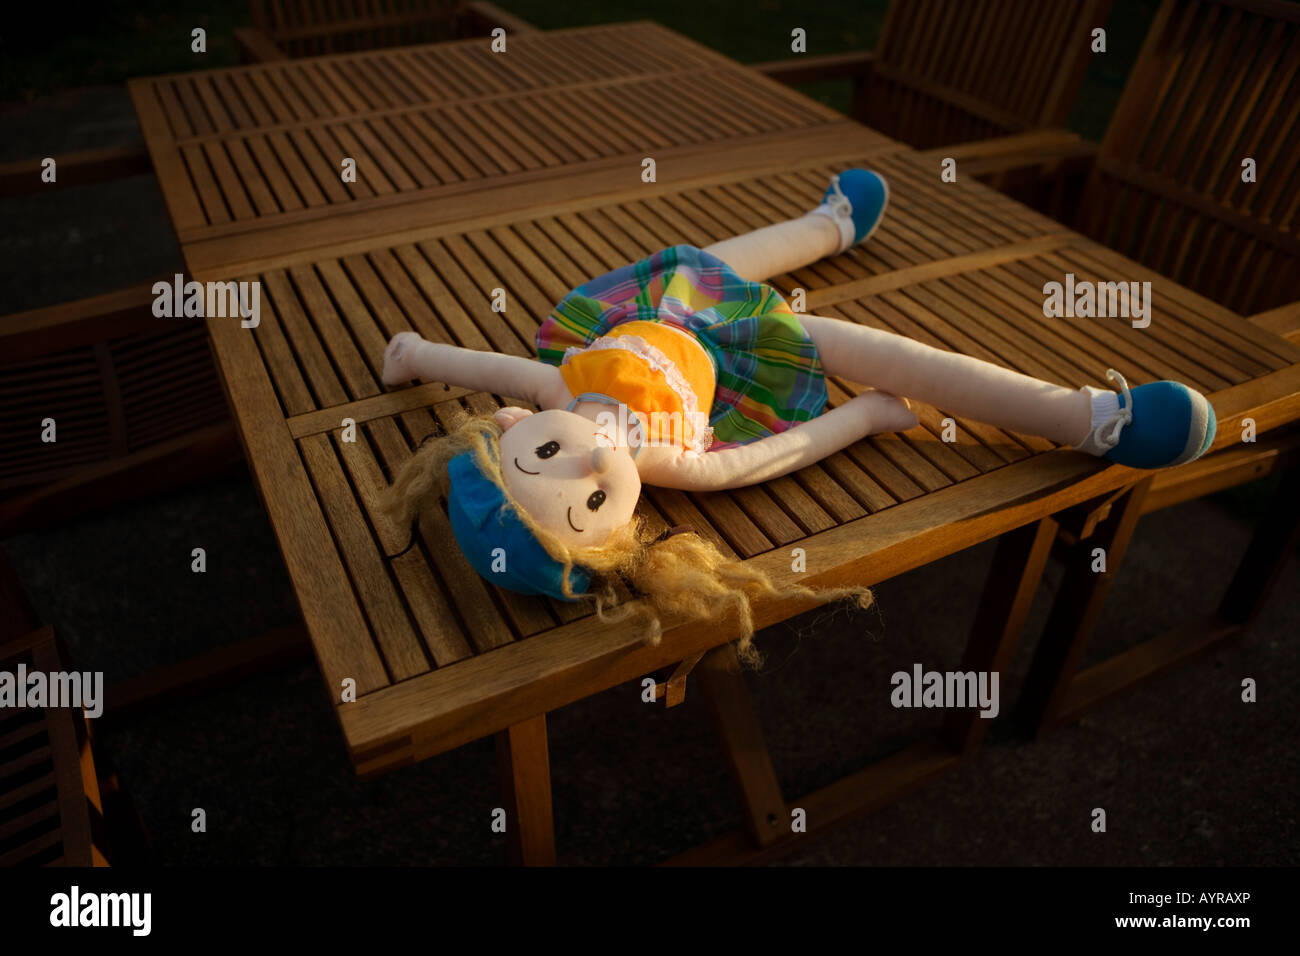 Soft toy doll on a table, outside in a garden, in evening sunlight - Stock Image